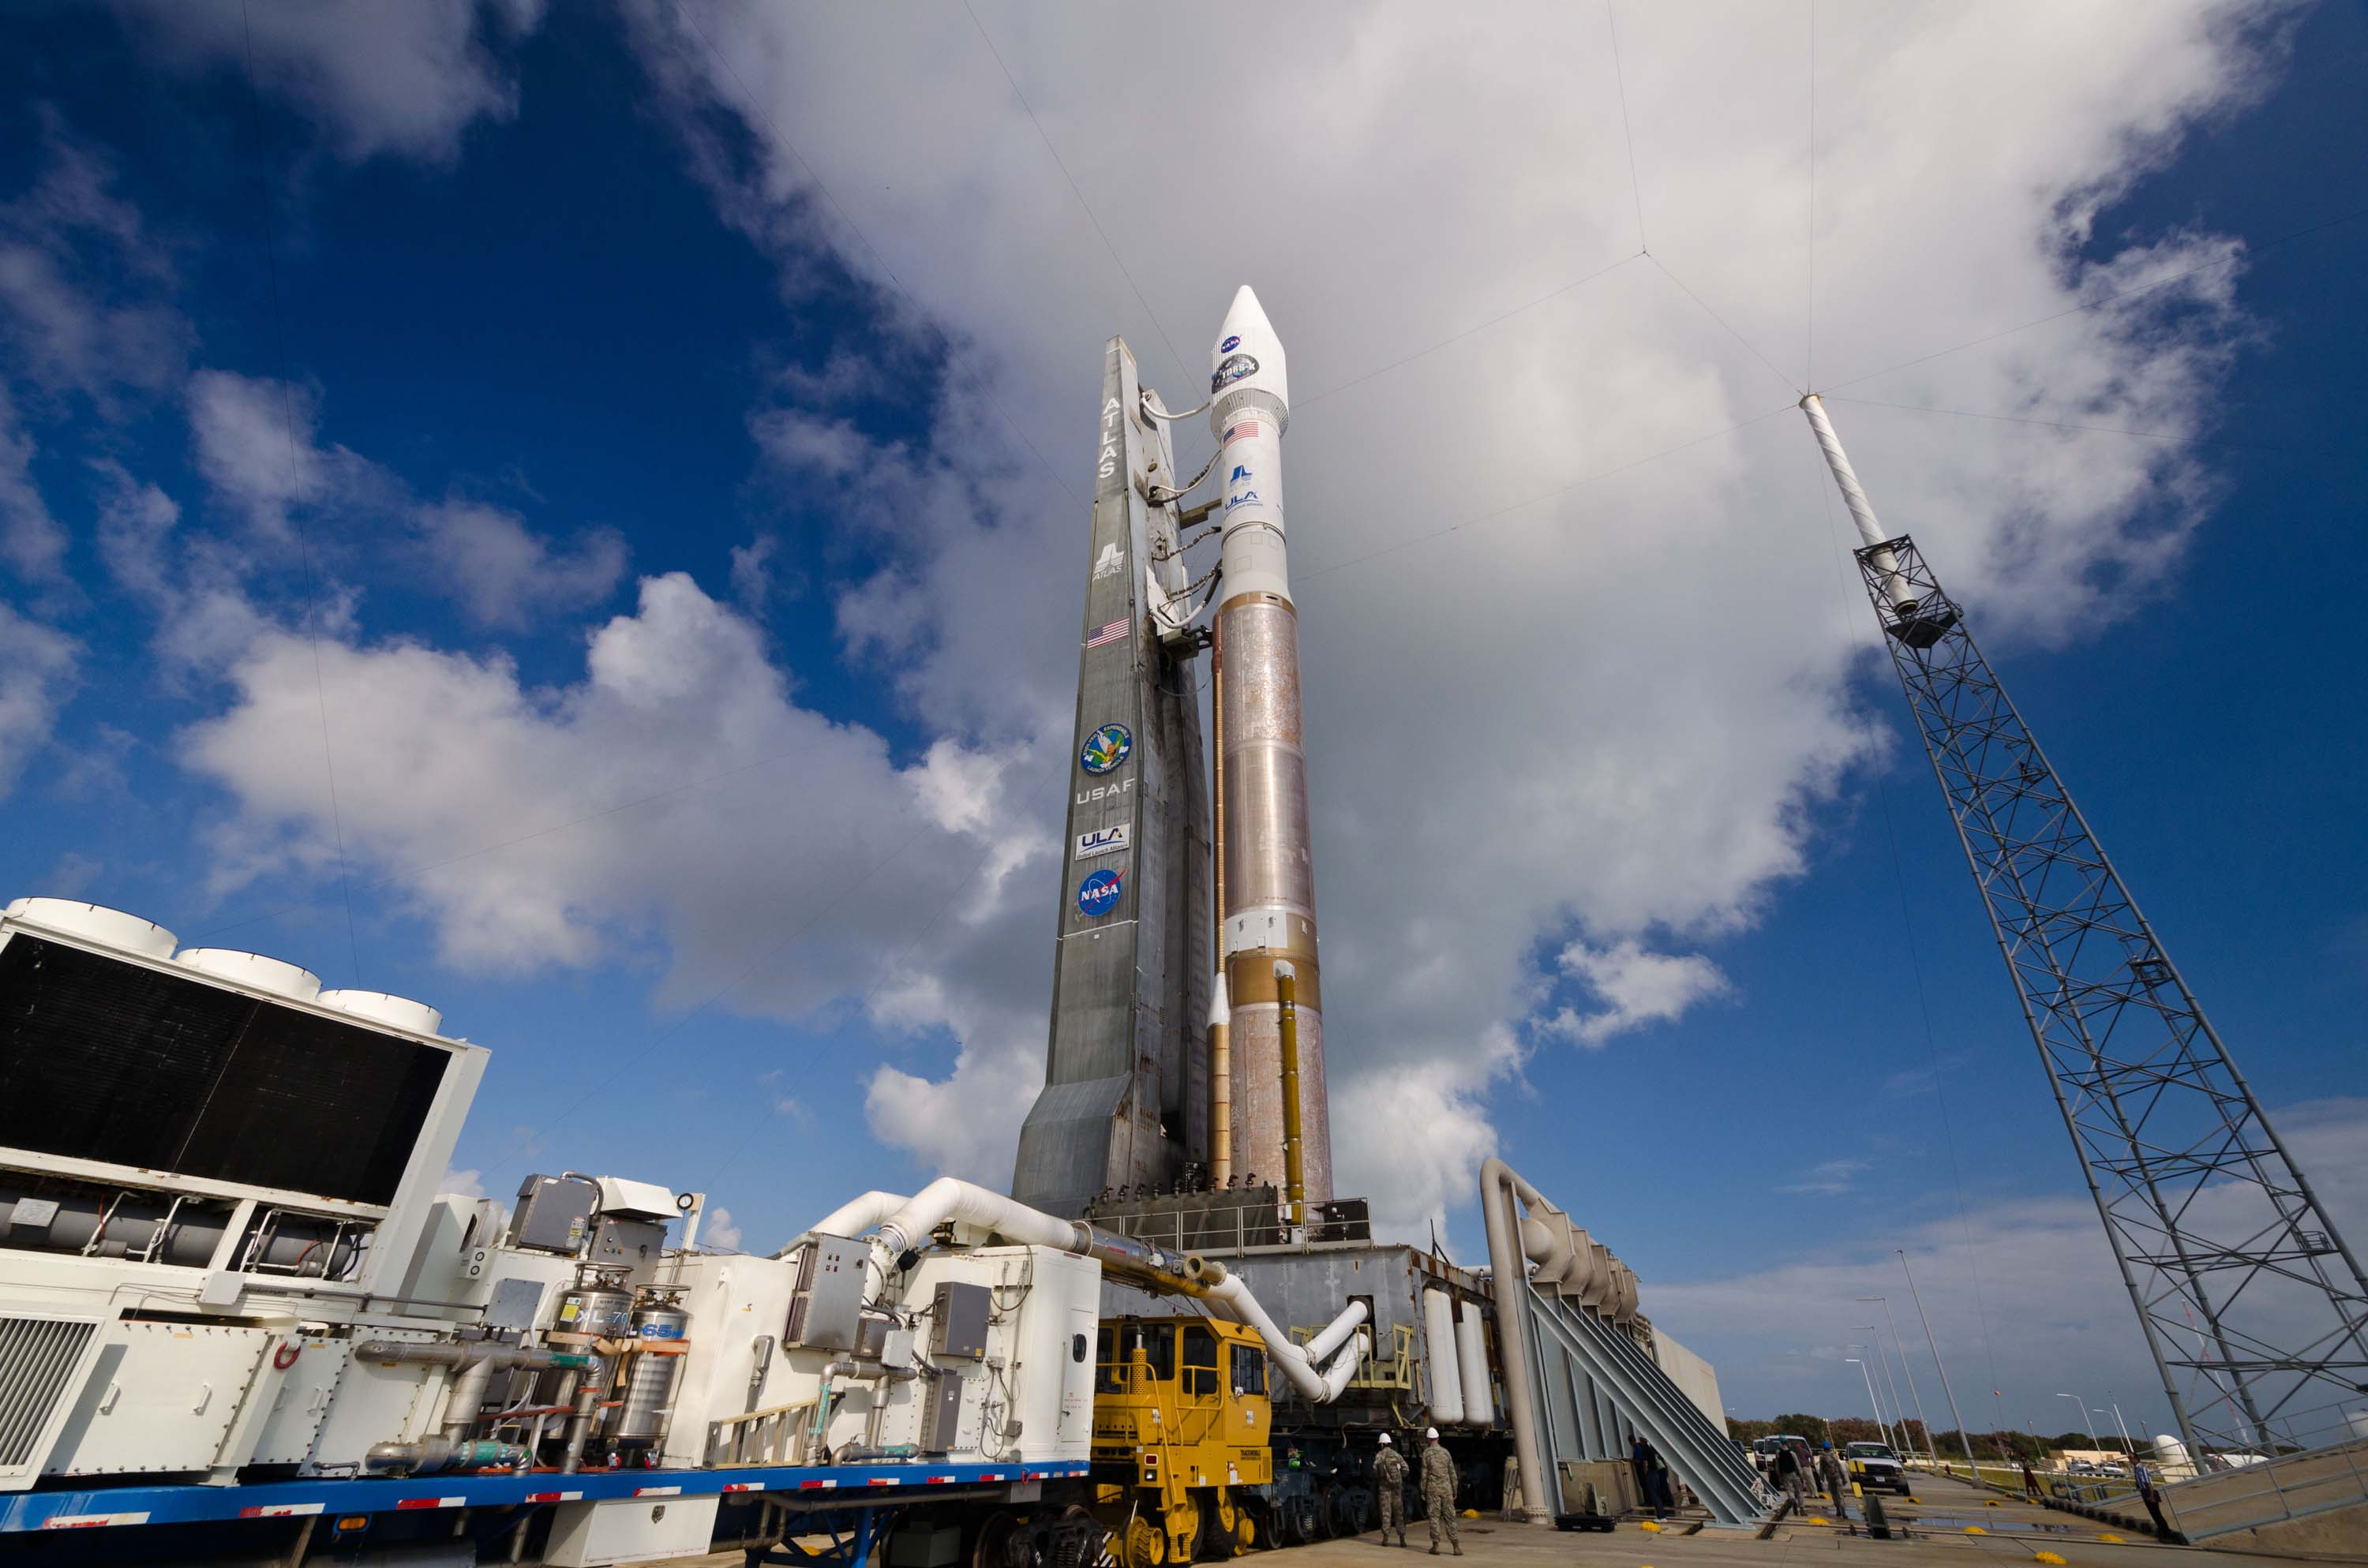 Atlas V Rolled Out to Launch Pad